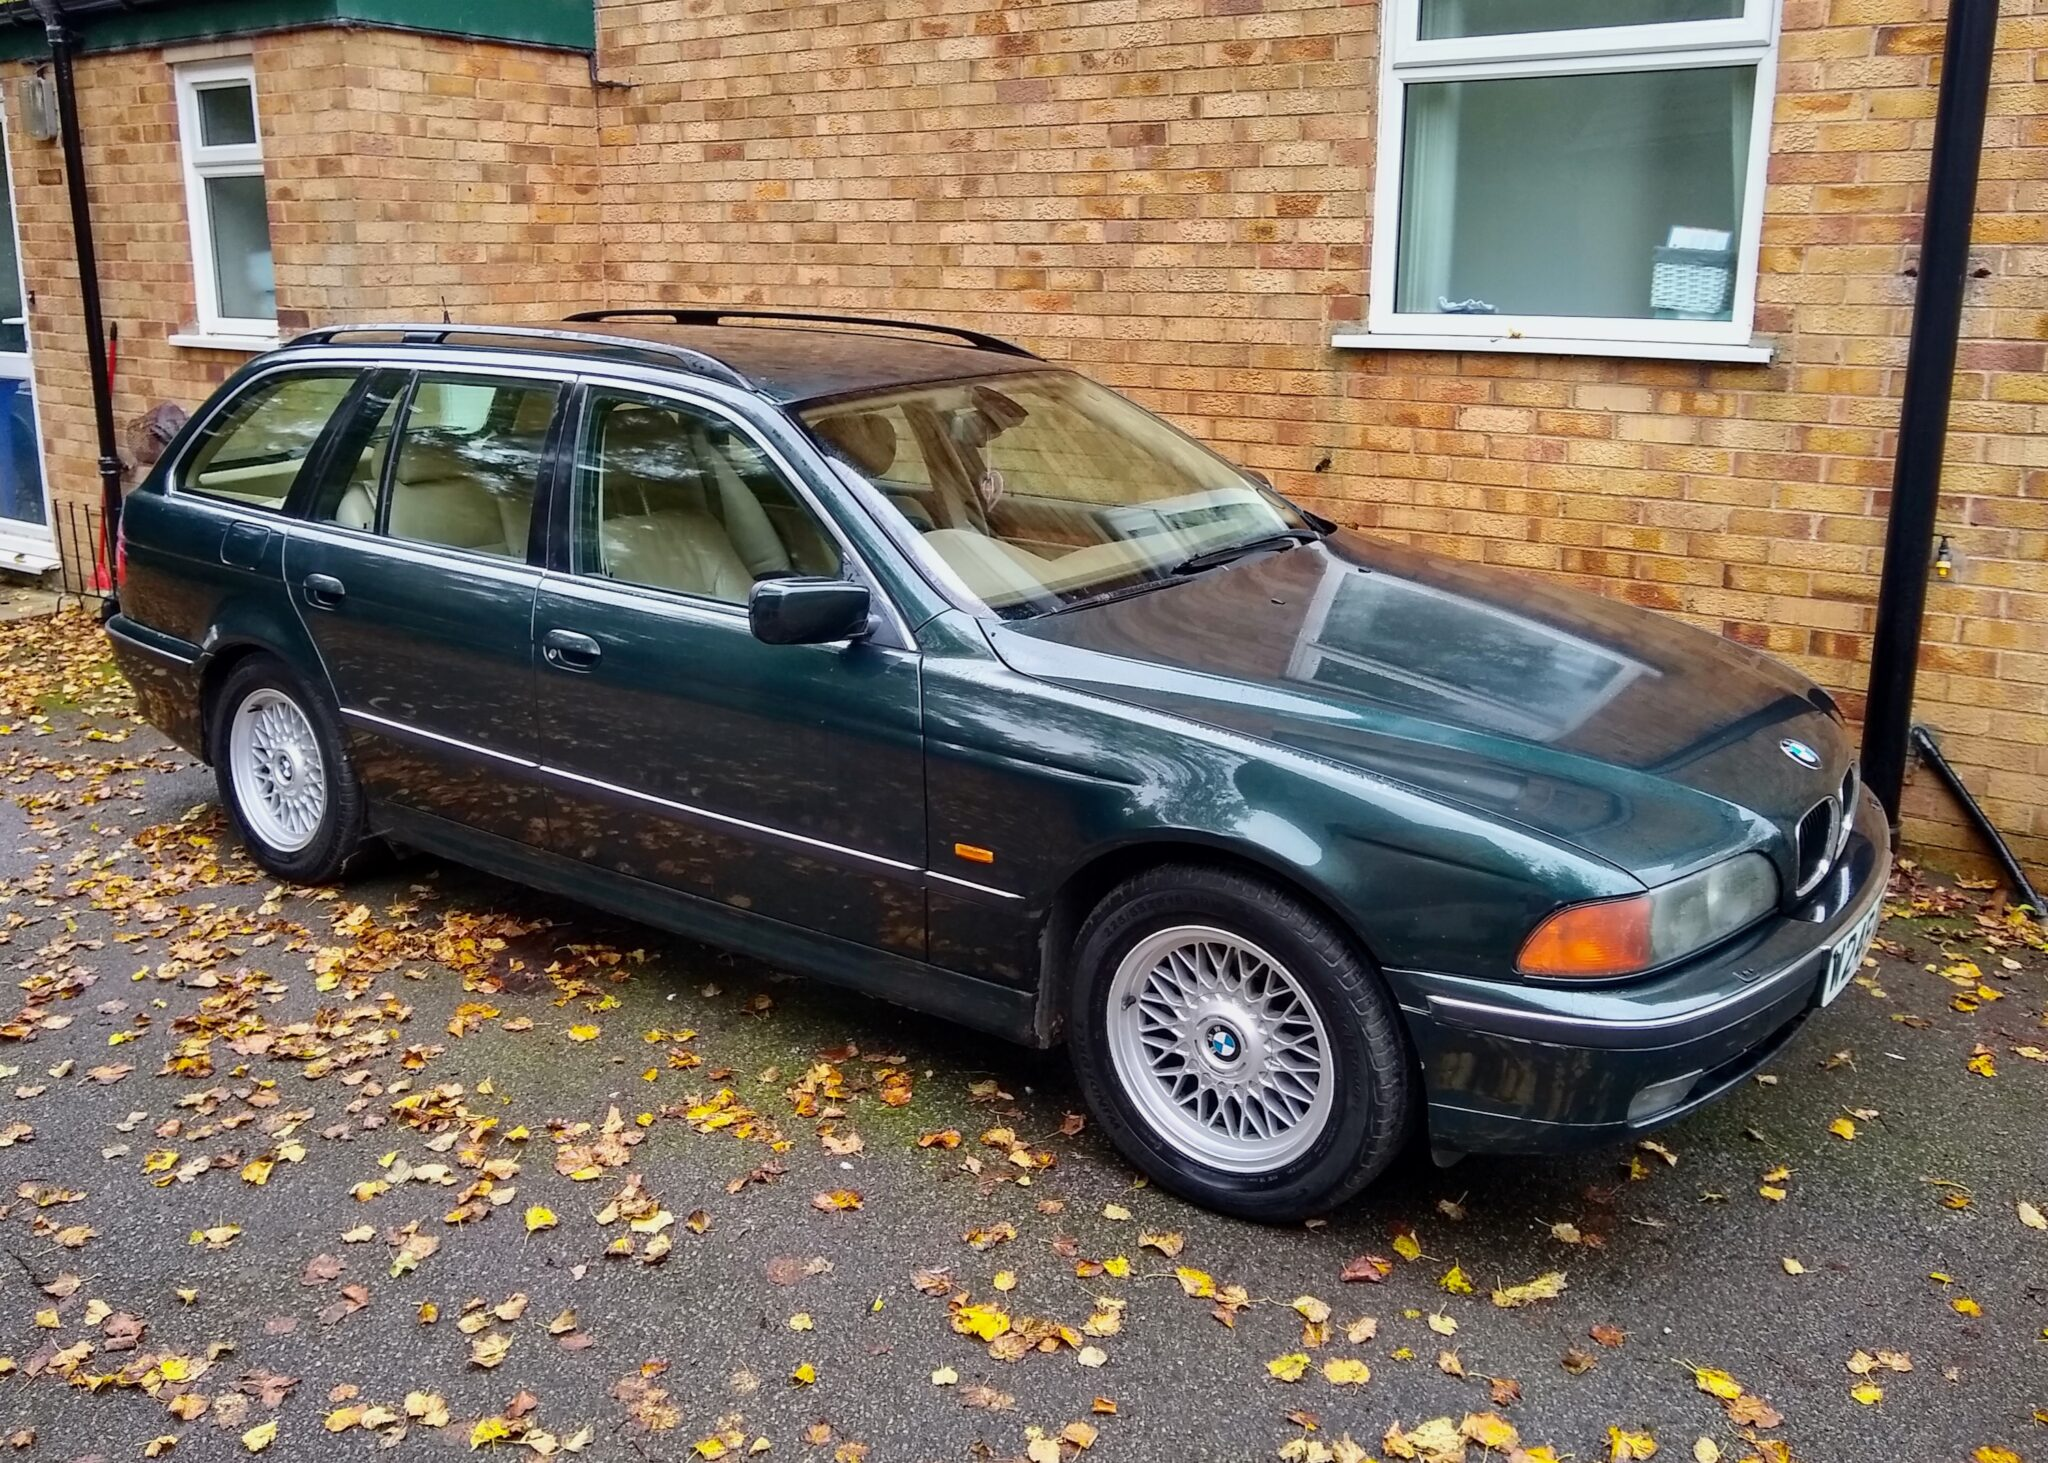 BMW, E39, BMW E39, BMW 5 series, BMW 528i, E39 Touring, project car, classic car, new car, Not 2 Grand, N2G, Not2Grand, not2grand.co.uk